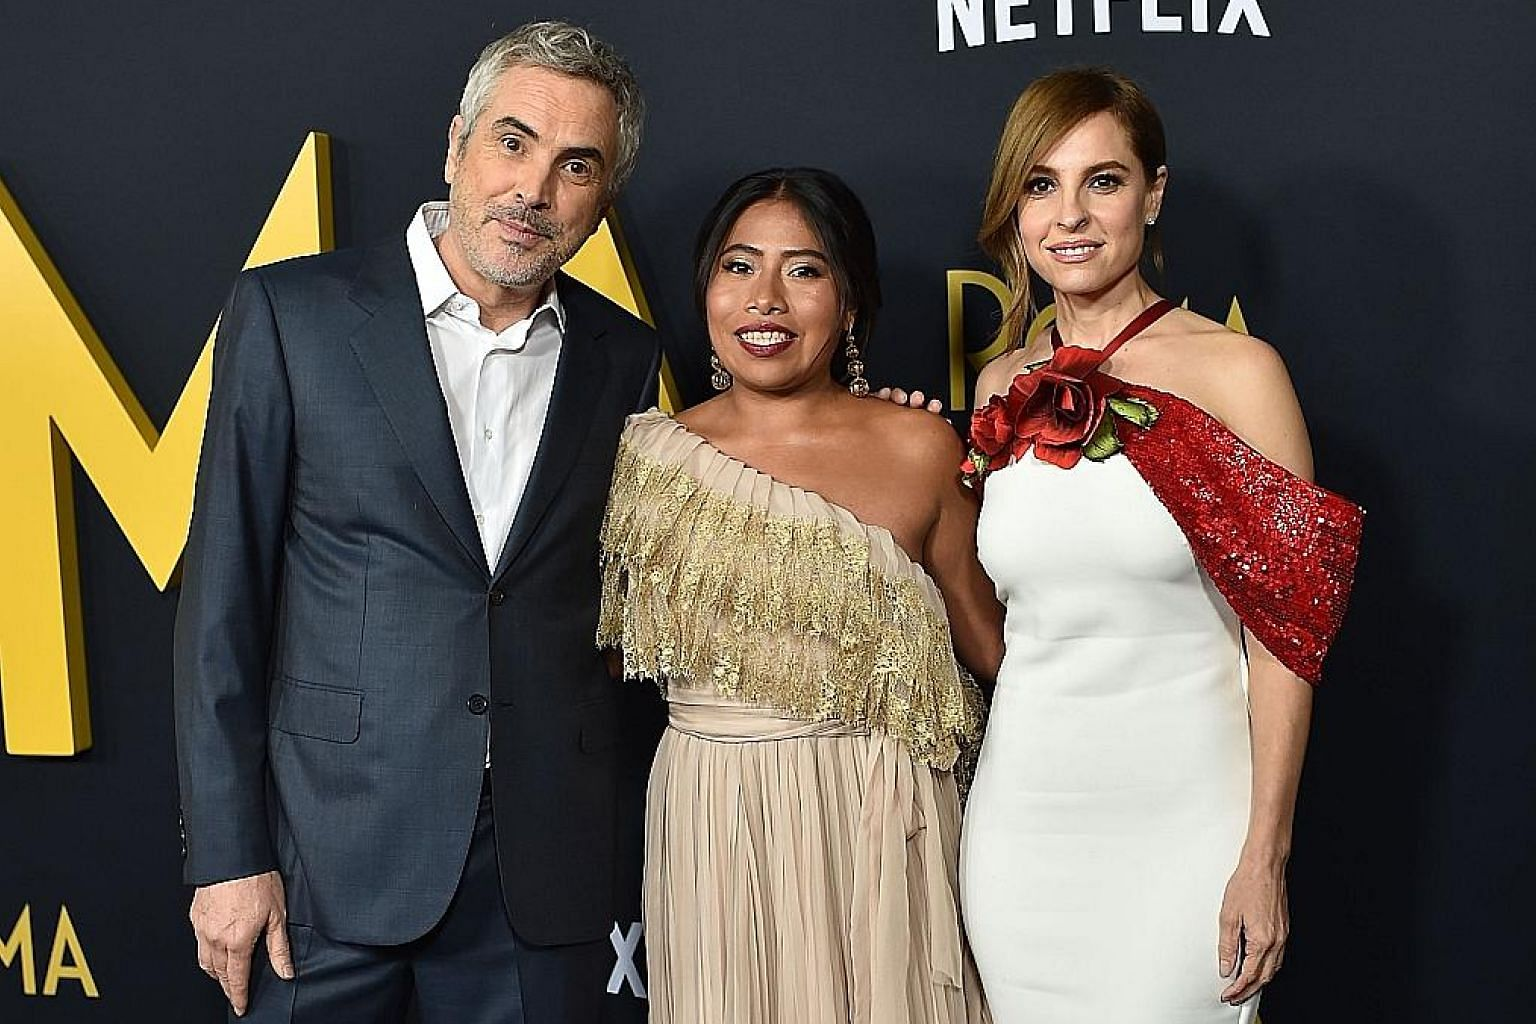 From far left: Oscar nominees Alfonso Cuaron (Best Director), Yalitza Aparicio (Actress in a Leading Role) and Marina de Tavira (Actress in a Supporting Role) of Roma, a mostly Spanish drama from streaming platform Netflix which bagged 10 nominations